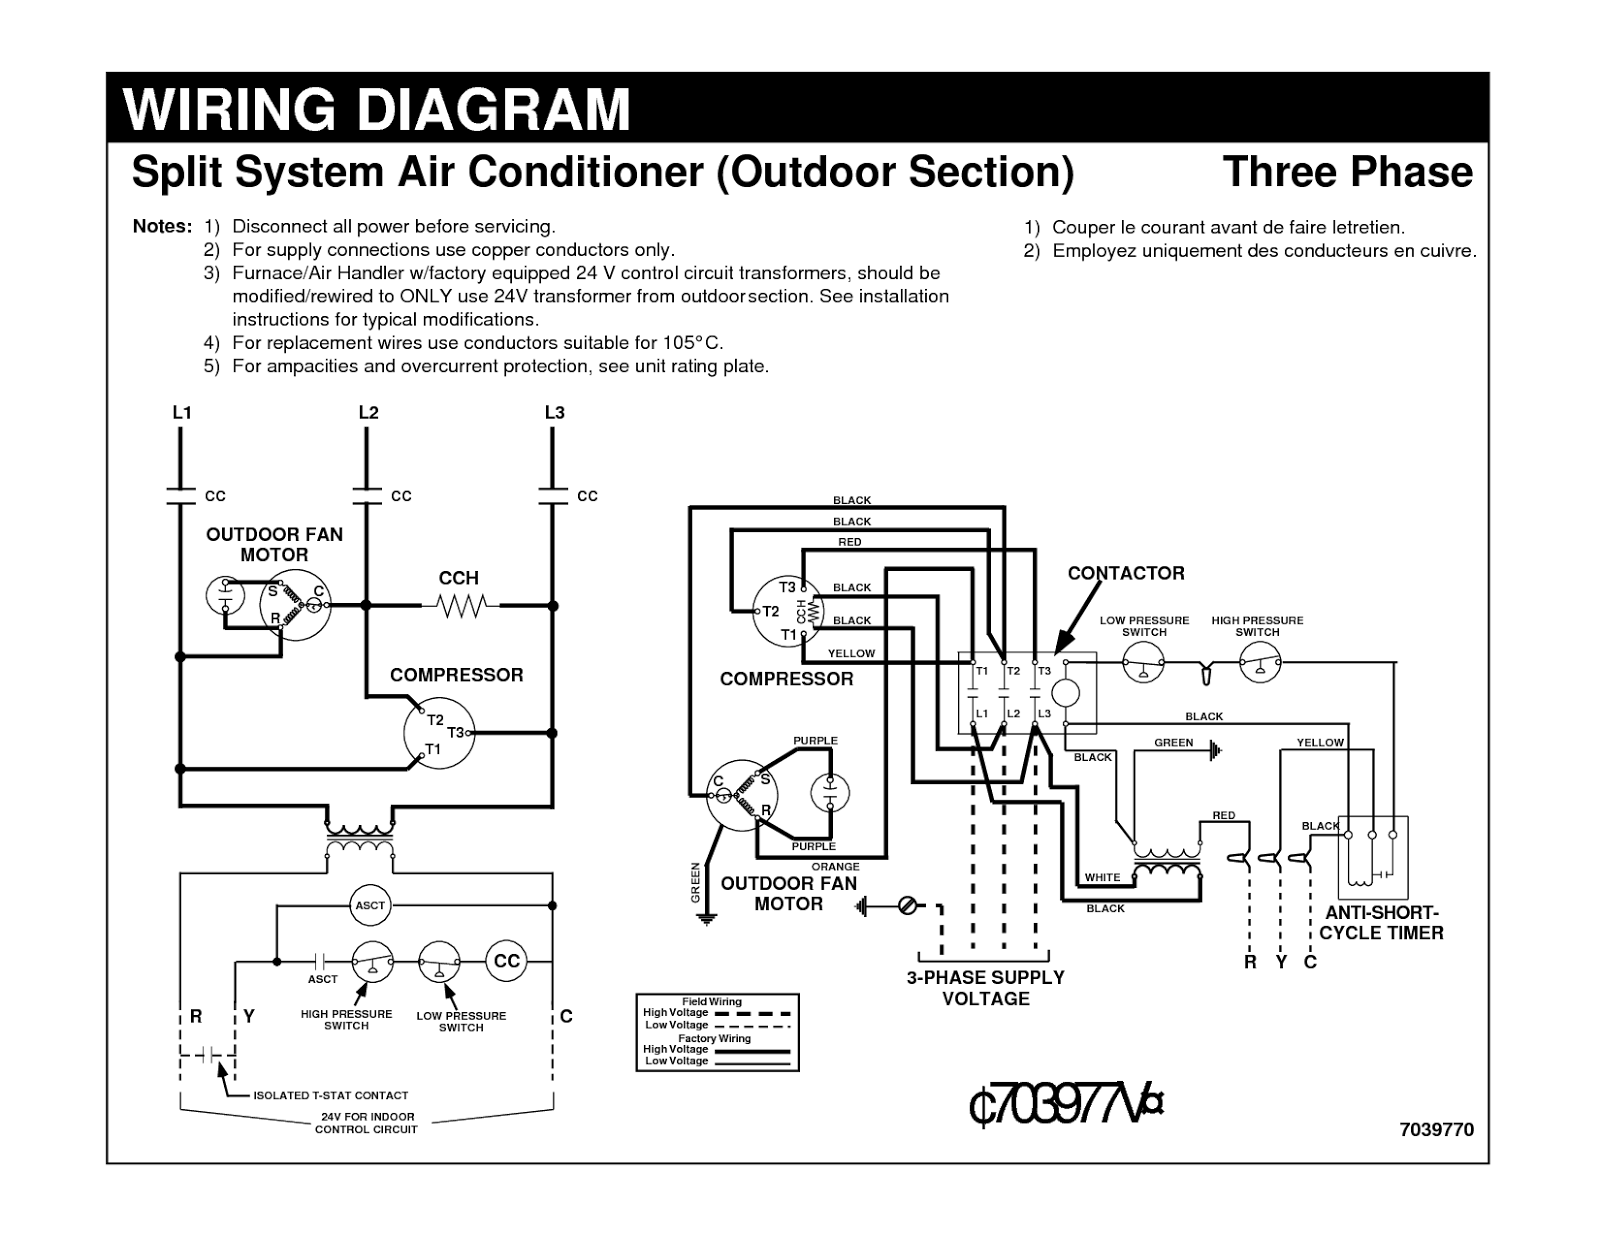 wiring diagram for aircon diagram data schemaelectrical wiring diagrams for air conditioning systems part one wiring diagram for car aircon wiring diagram for aircon